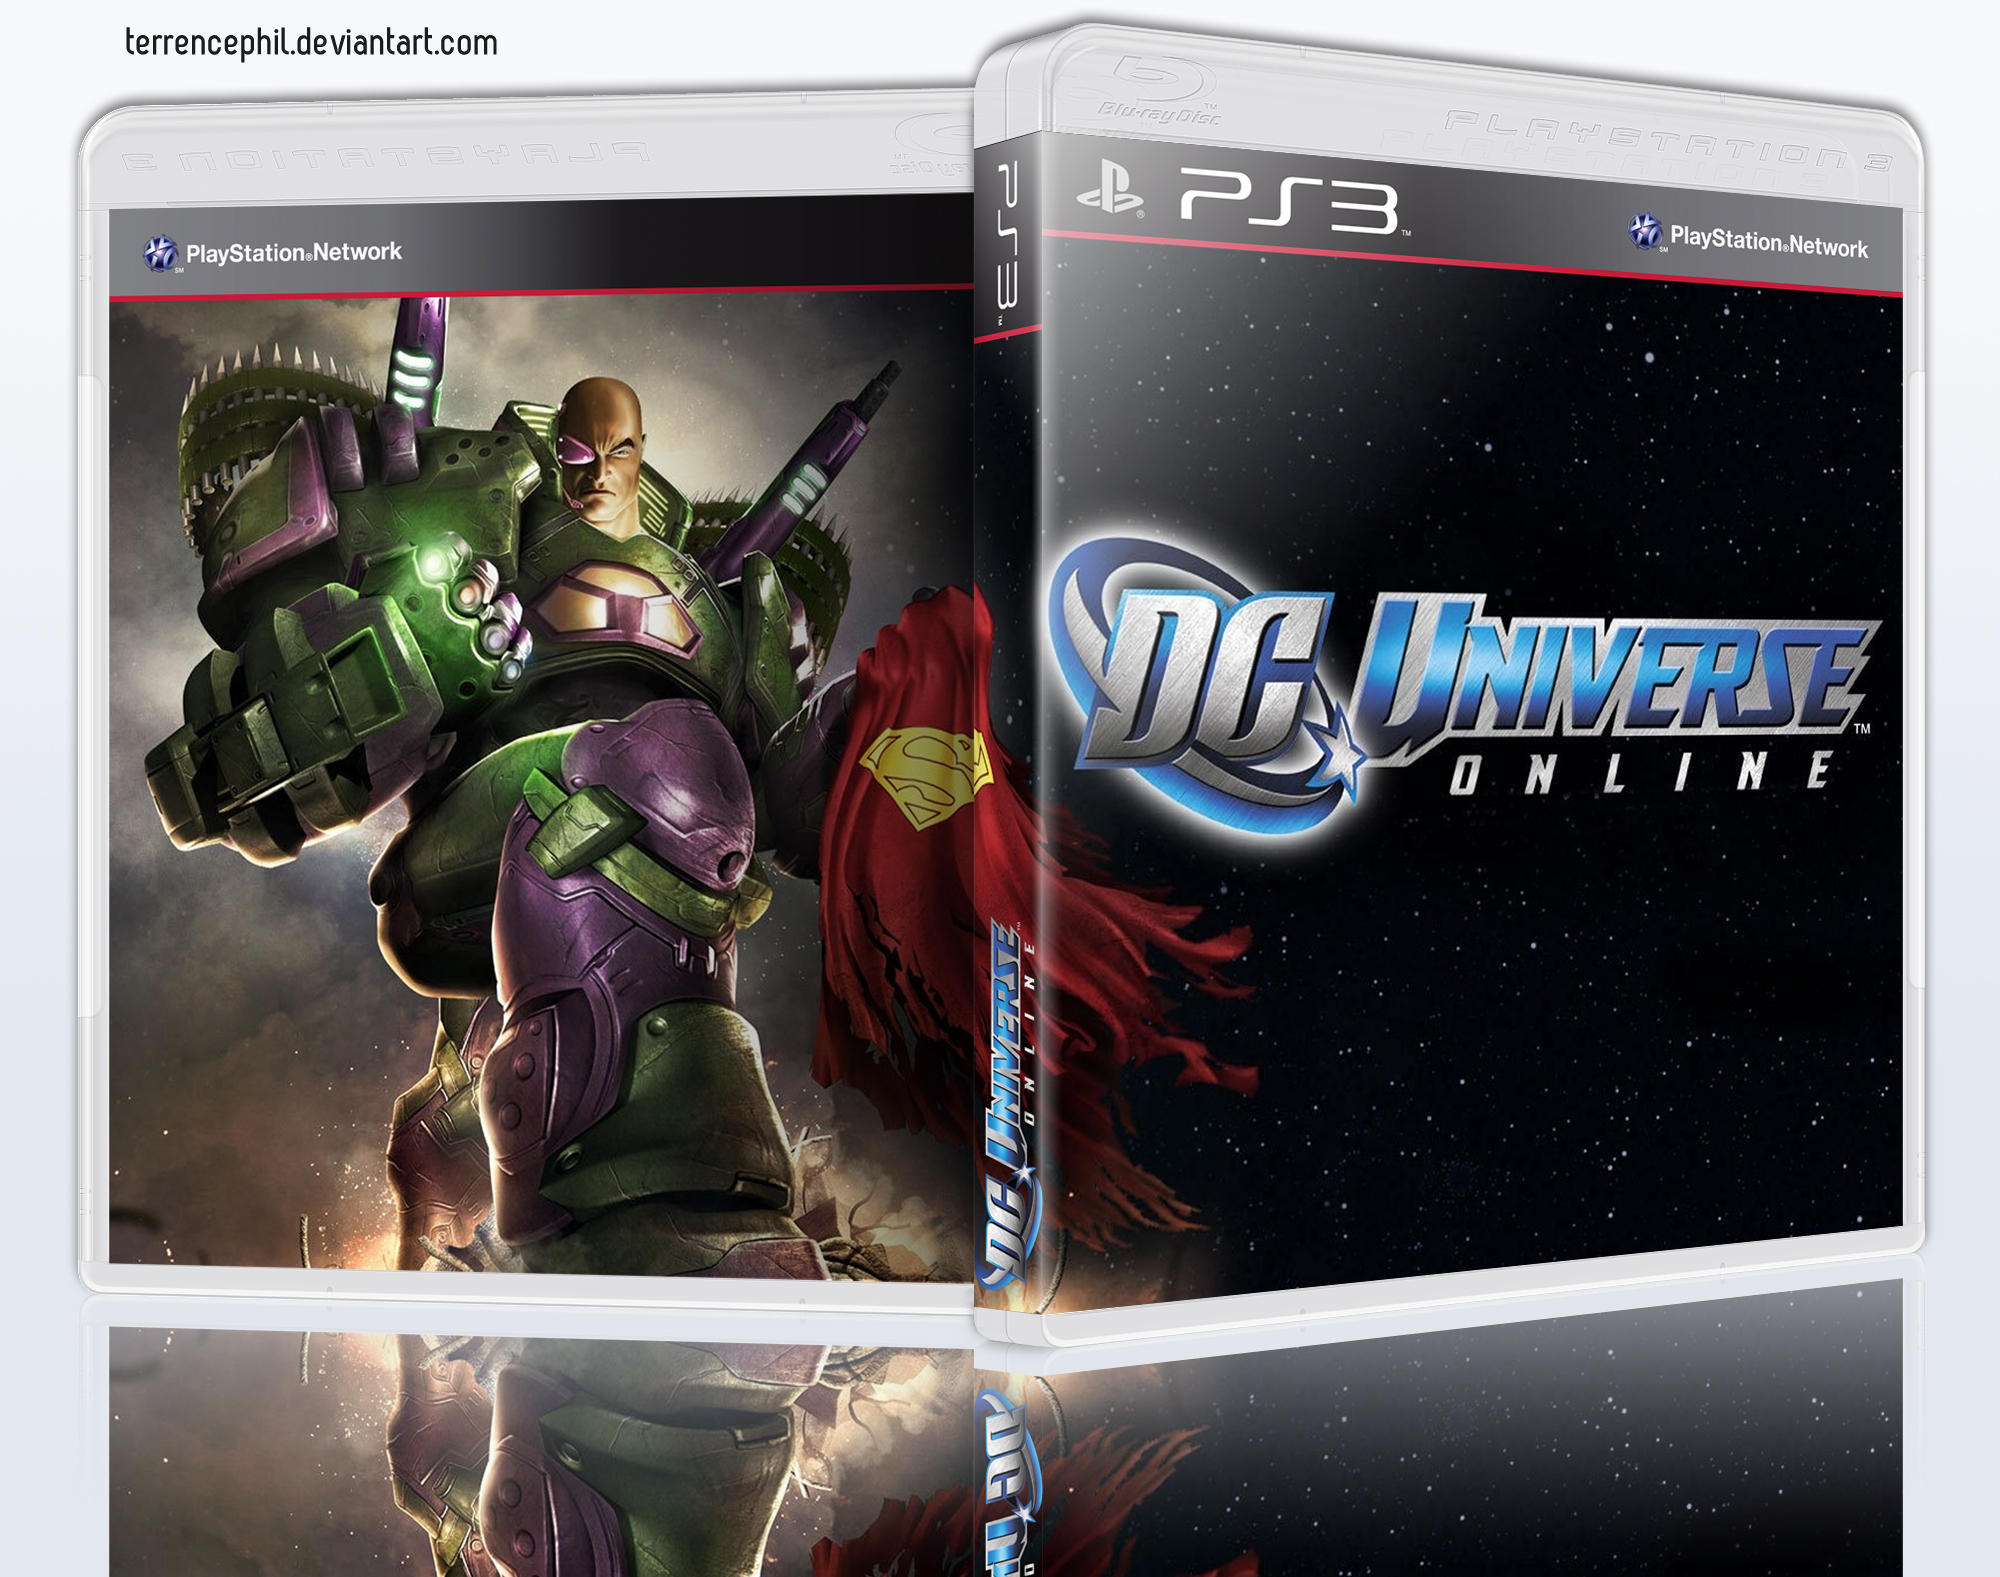 DC Universe PlayStation 3 Box Art by terrencephil